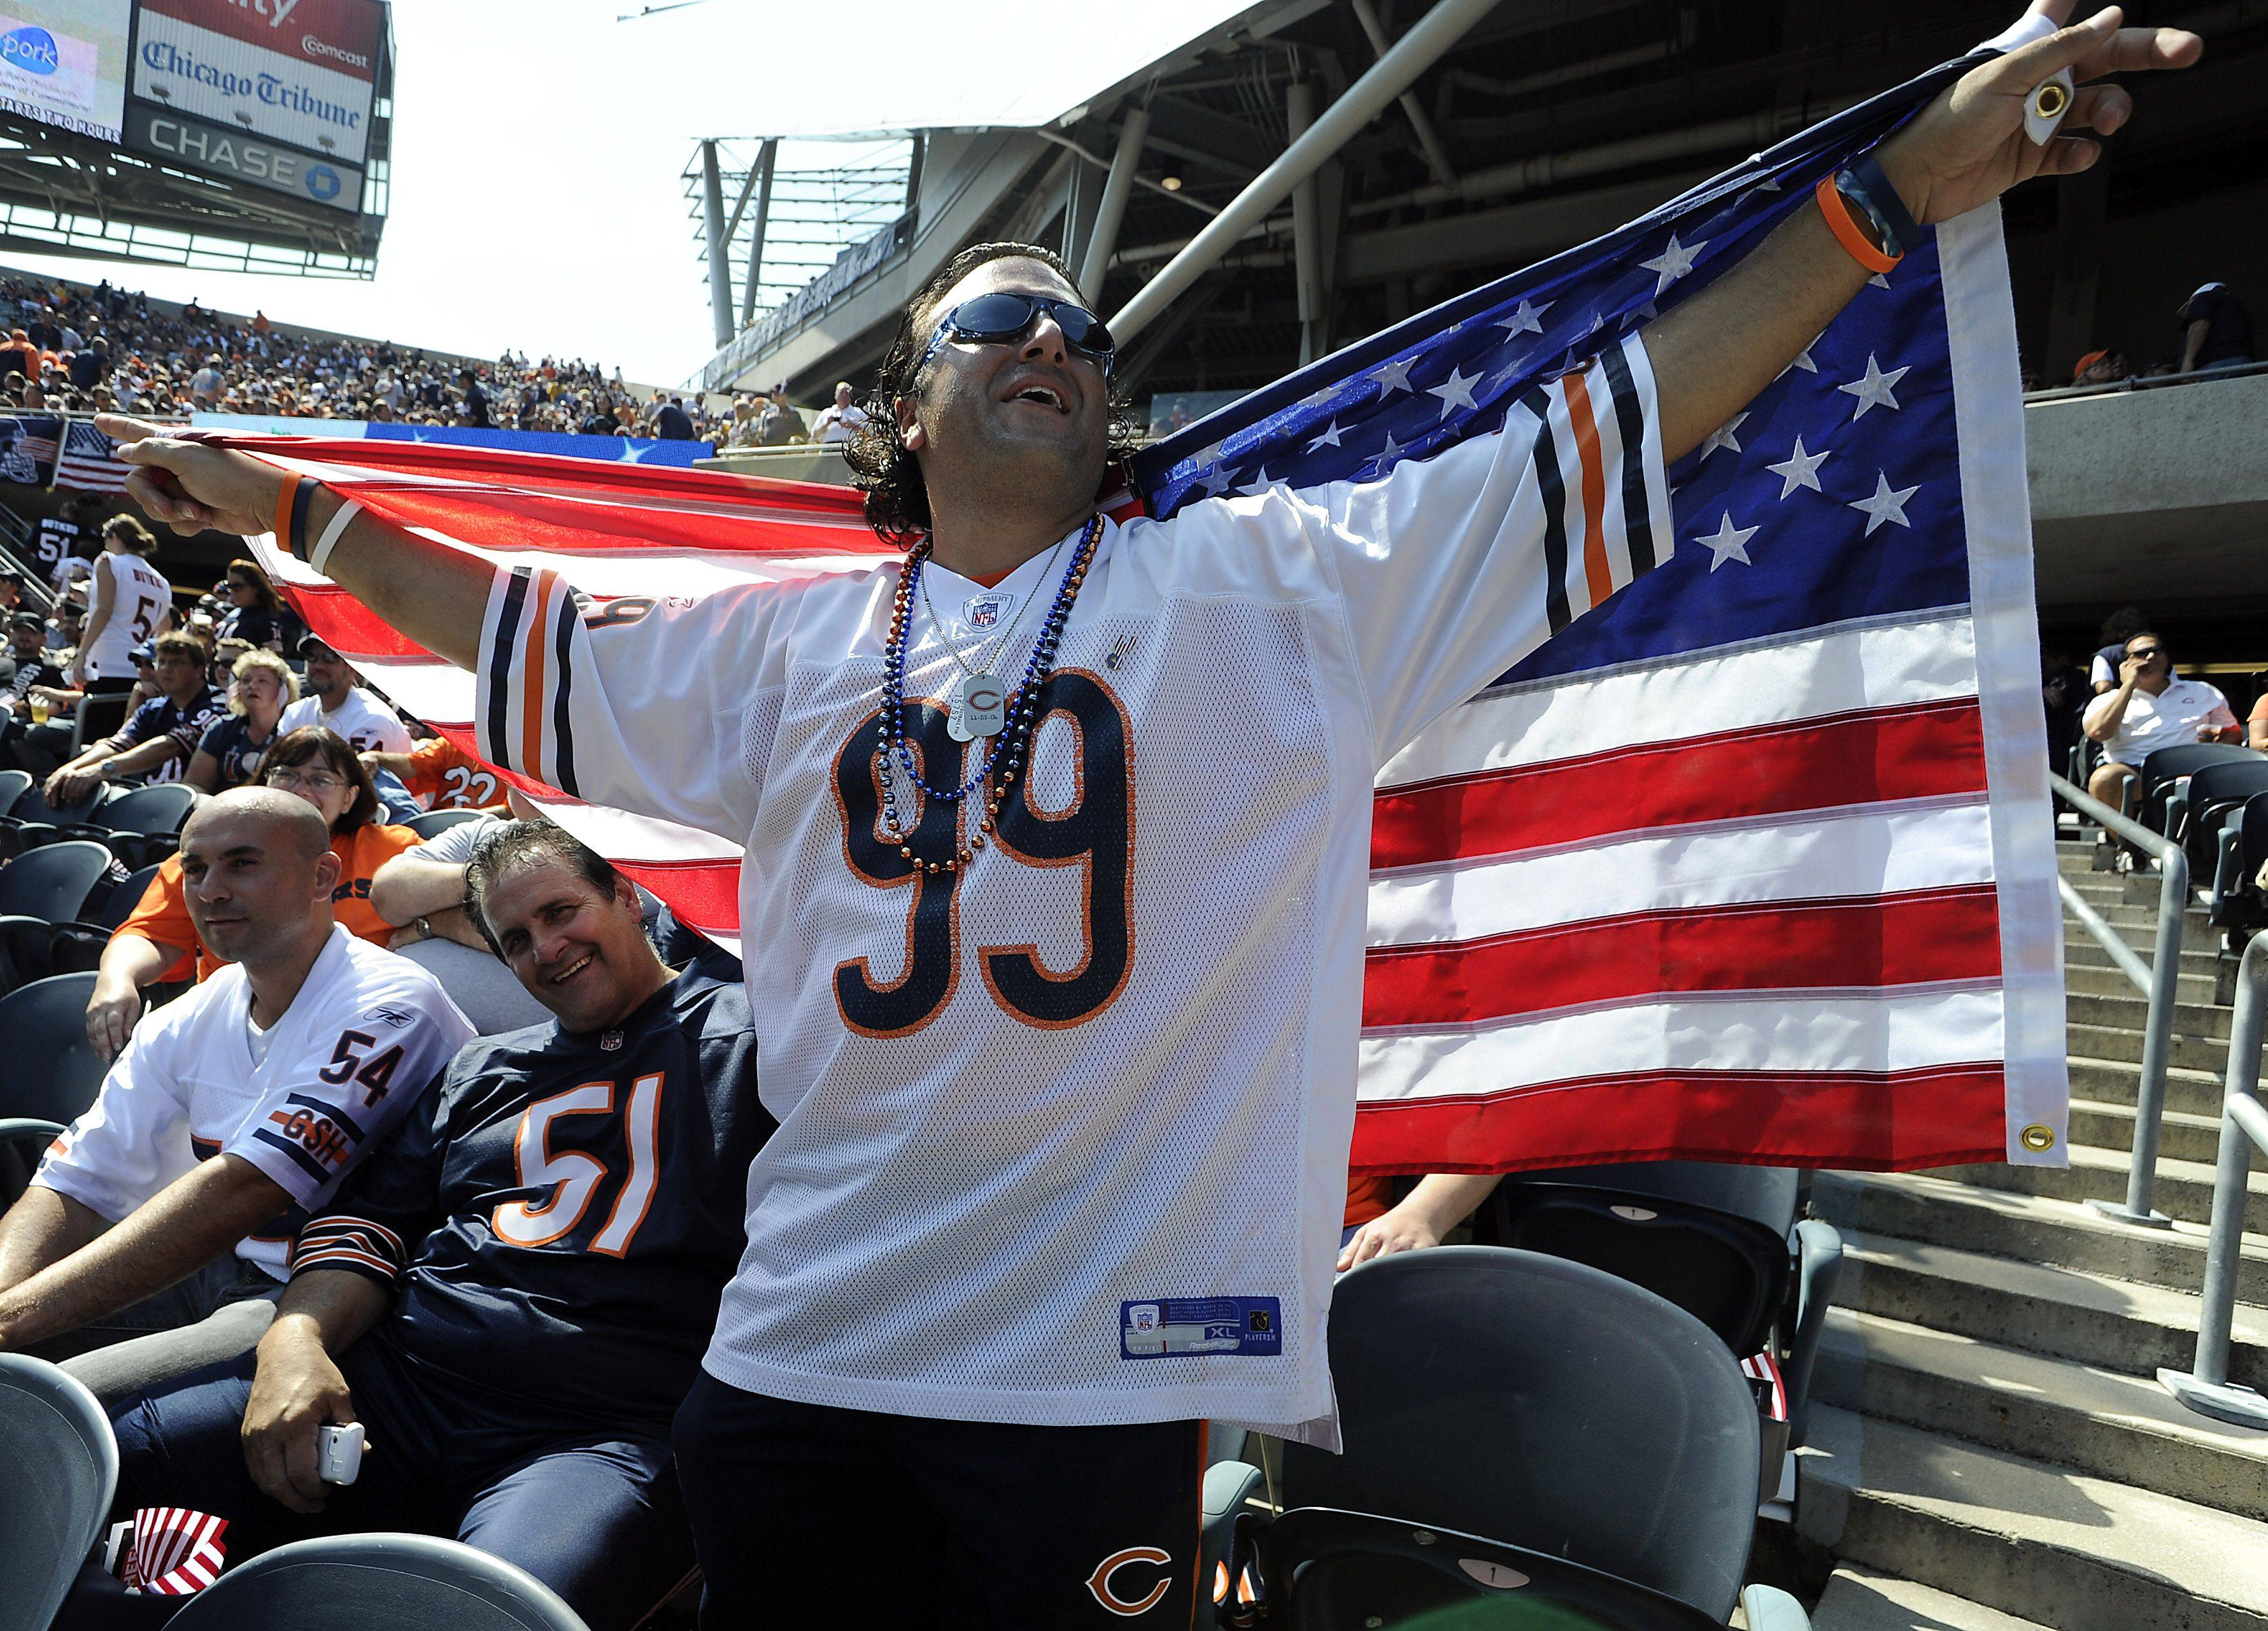 Bears' fan Tony Capuani of Elgin honors the victims of 911 with the American flag before the game.